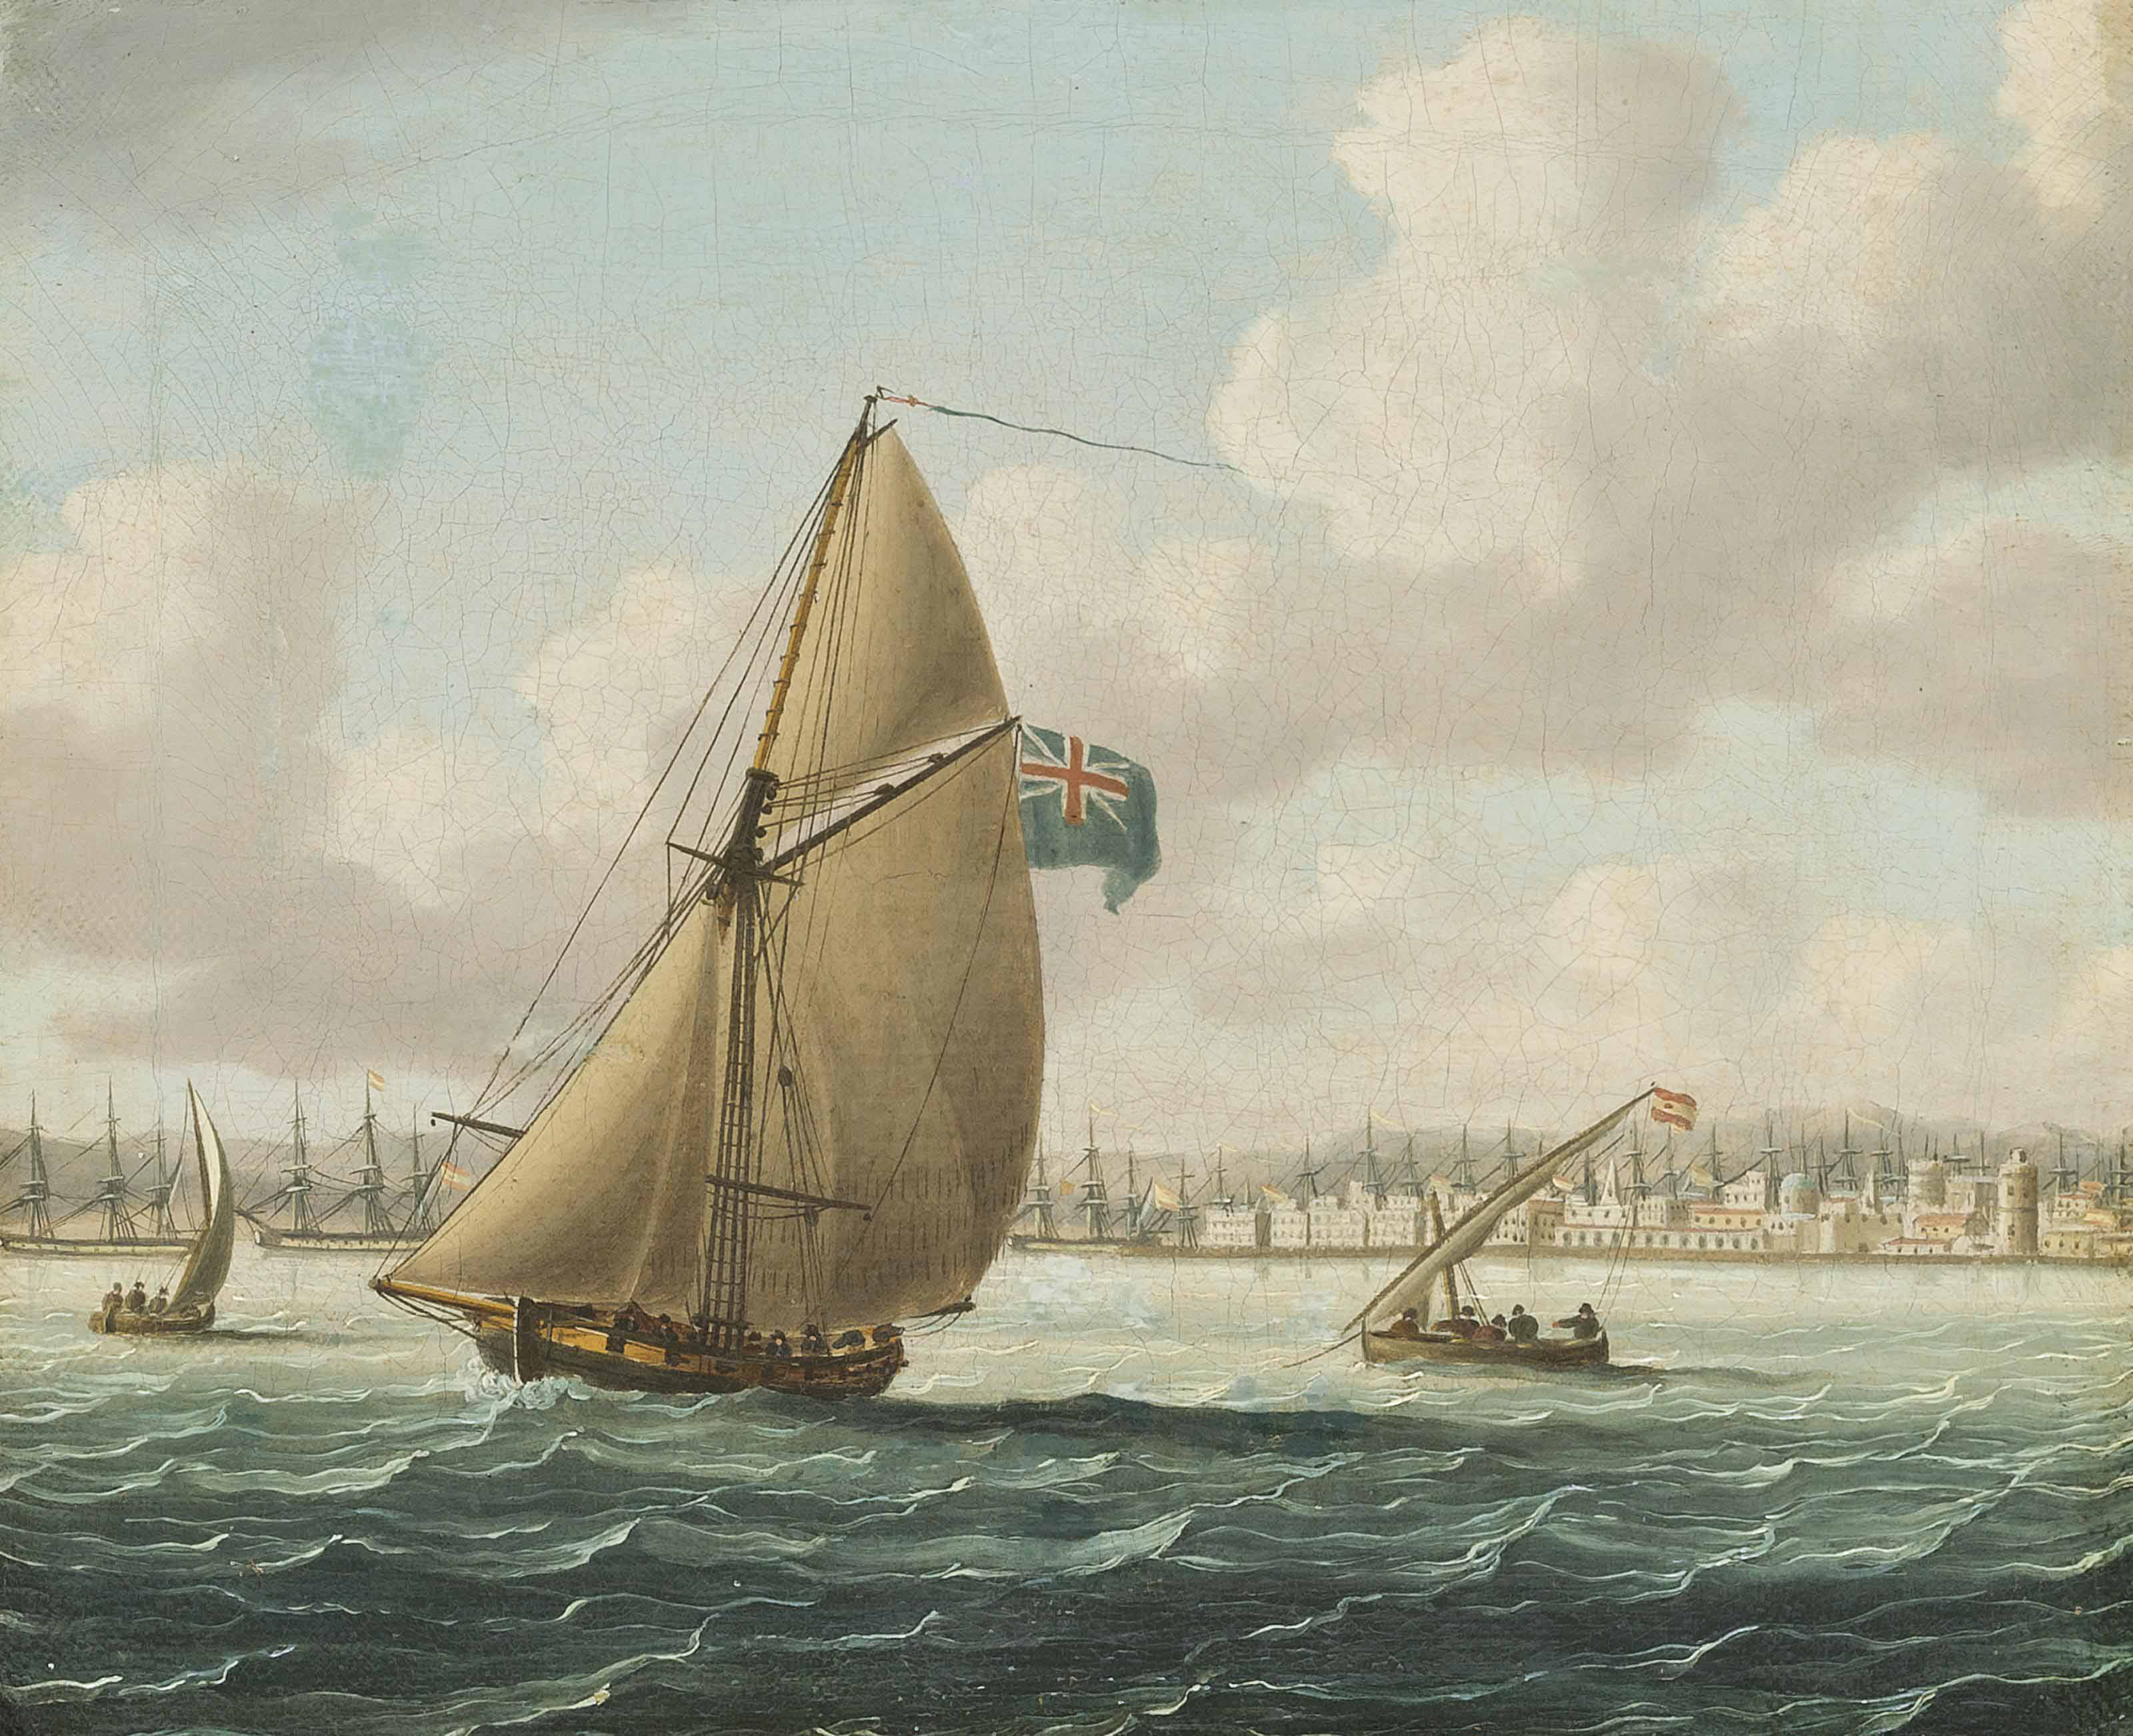 The blockade of Cadiz, 1797: The Spanish fleet lying in the port of Cadiz with a Royal Navy cutter patrolling the harbour